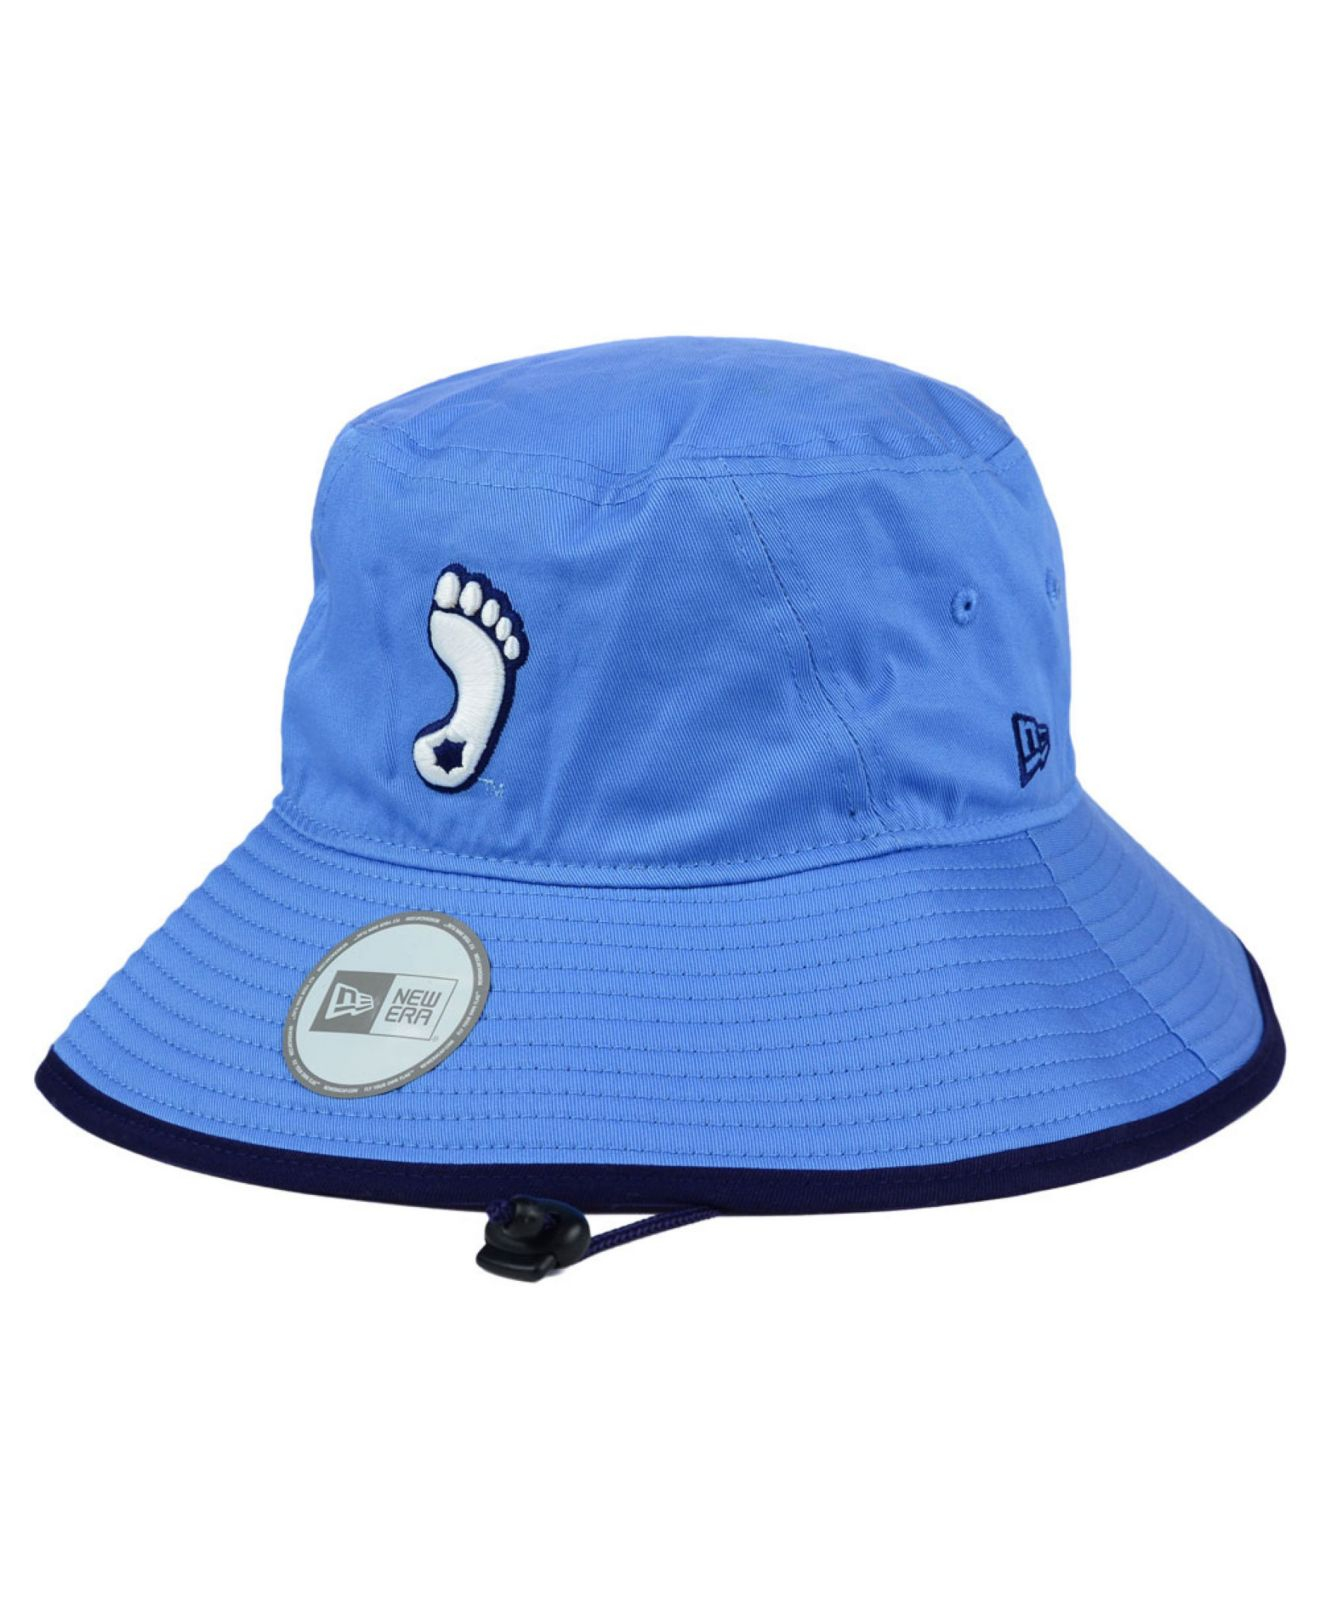 ... low cost lyst ktz north carolina tar heels tip bucket hat in blue for  men b37df ... 502084dab51